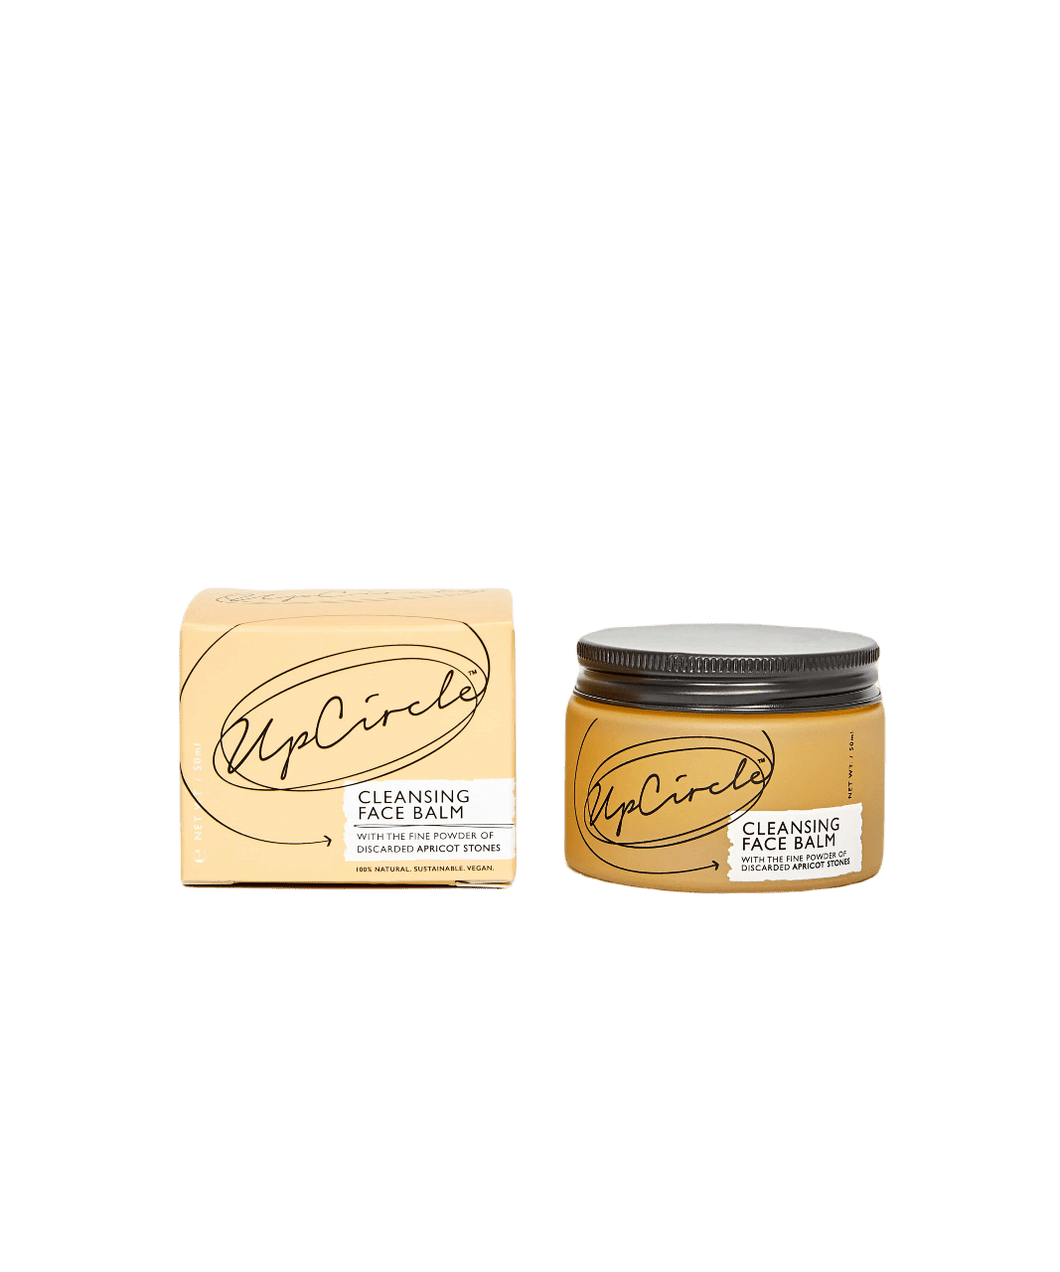 Upcircle All Products Cleansing Balm with Apricot Powder